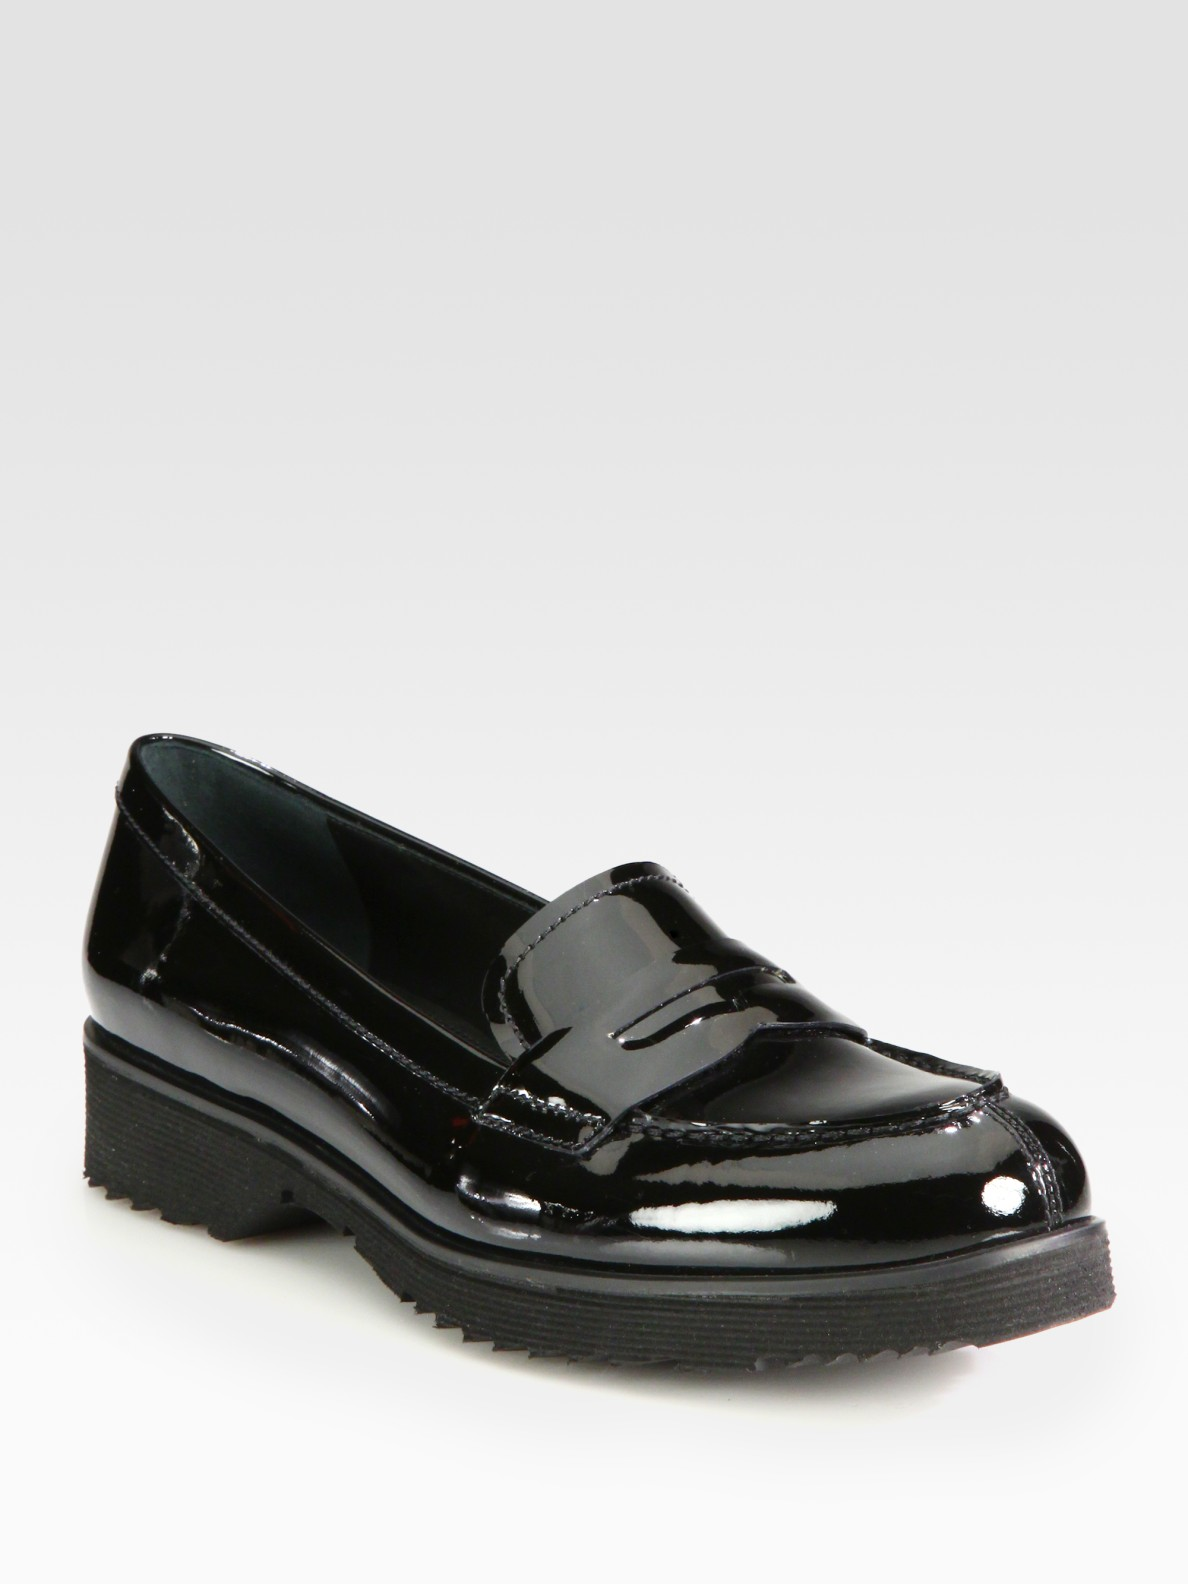 77798b0e76b Lyst - Prada Patent Leather Penny Loafers in Black